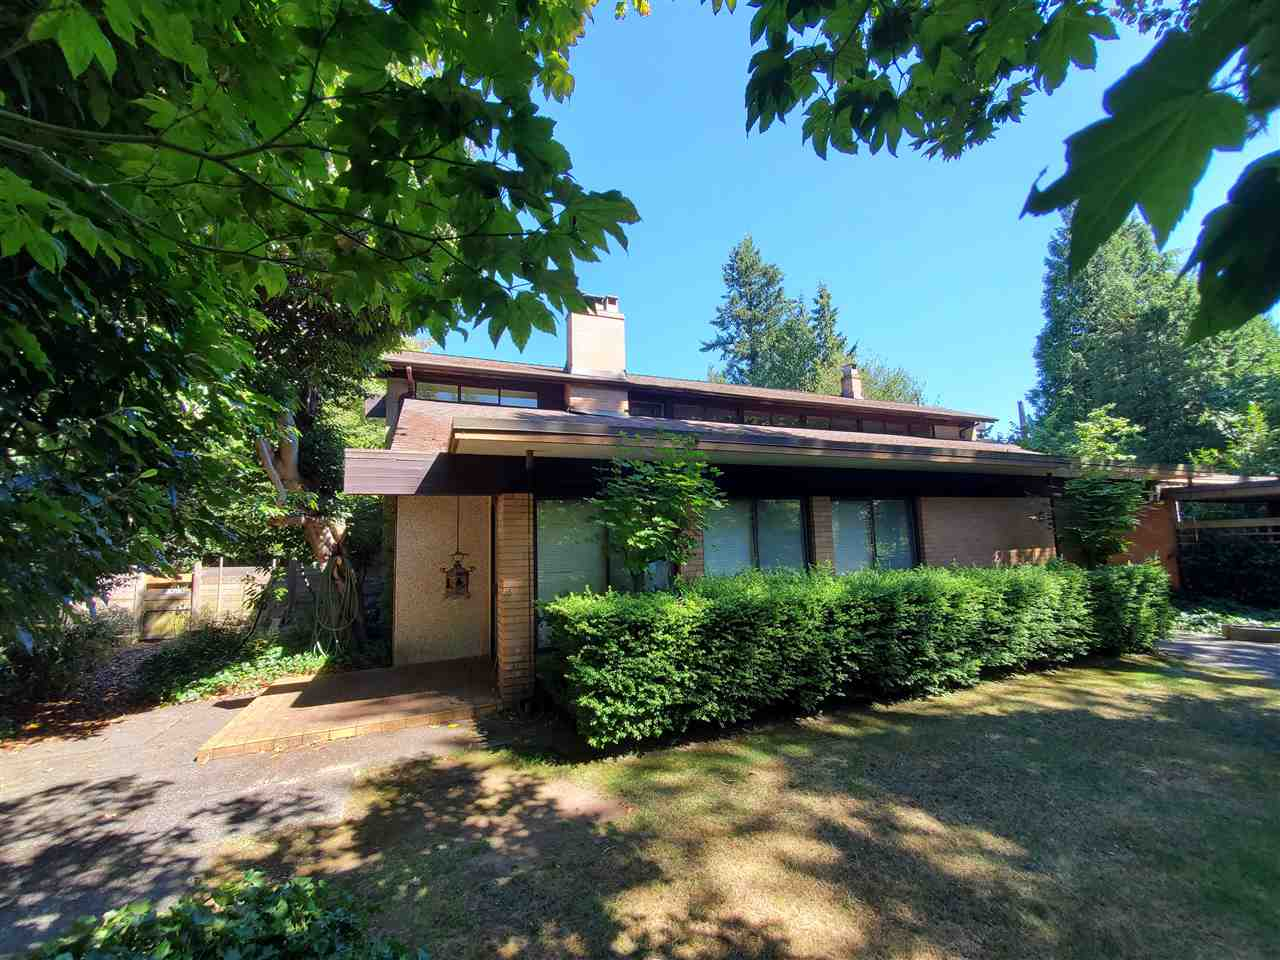 7048 HUDSON STREET - South Granville House/Single Family for sale, 3 Bedrooms (R2483241) - #1